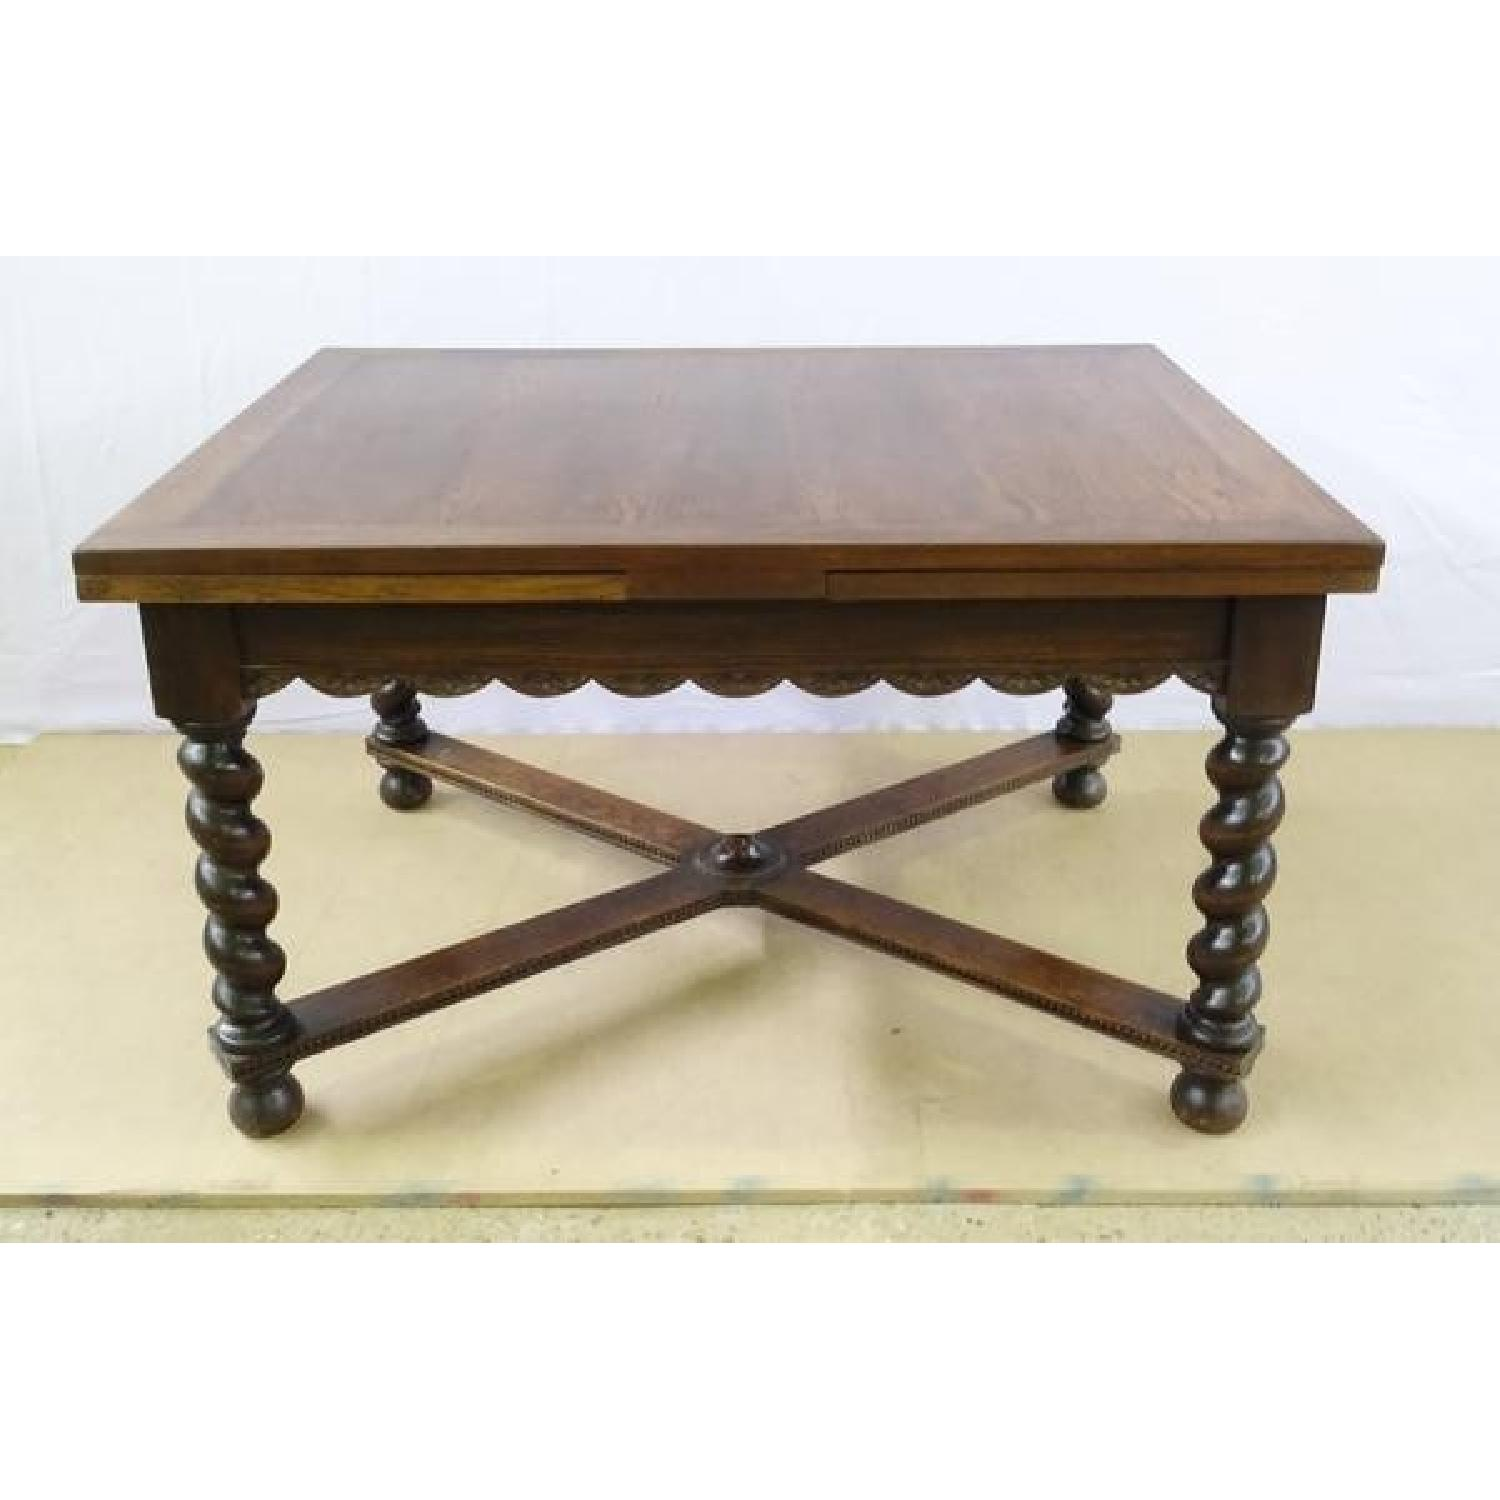 Antique French Extending Barley Twist Oak Dining Table ...